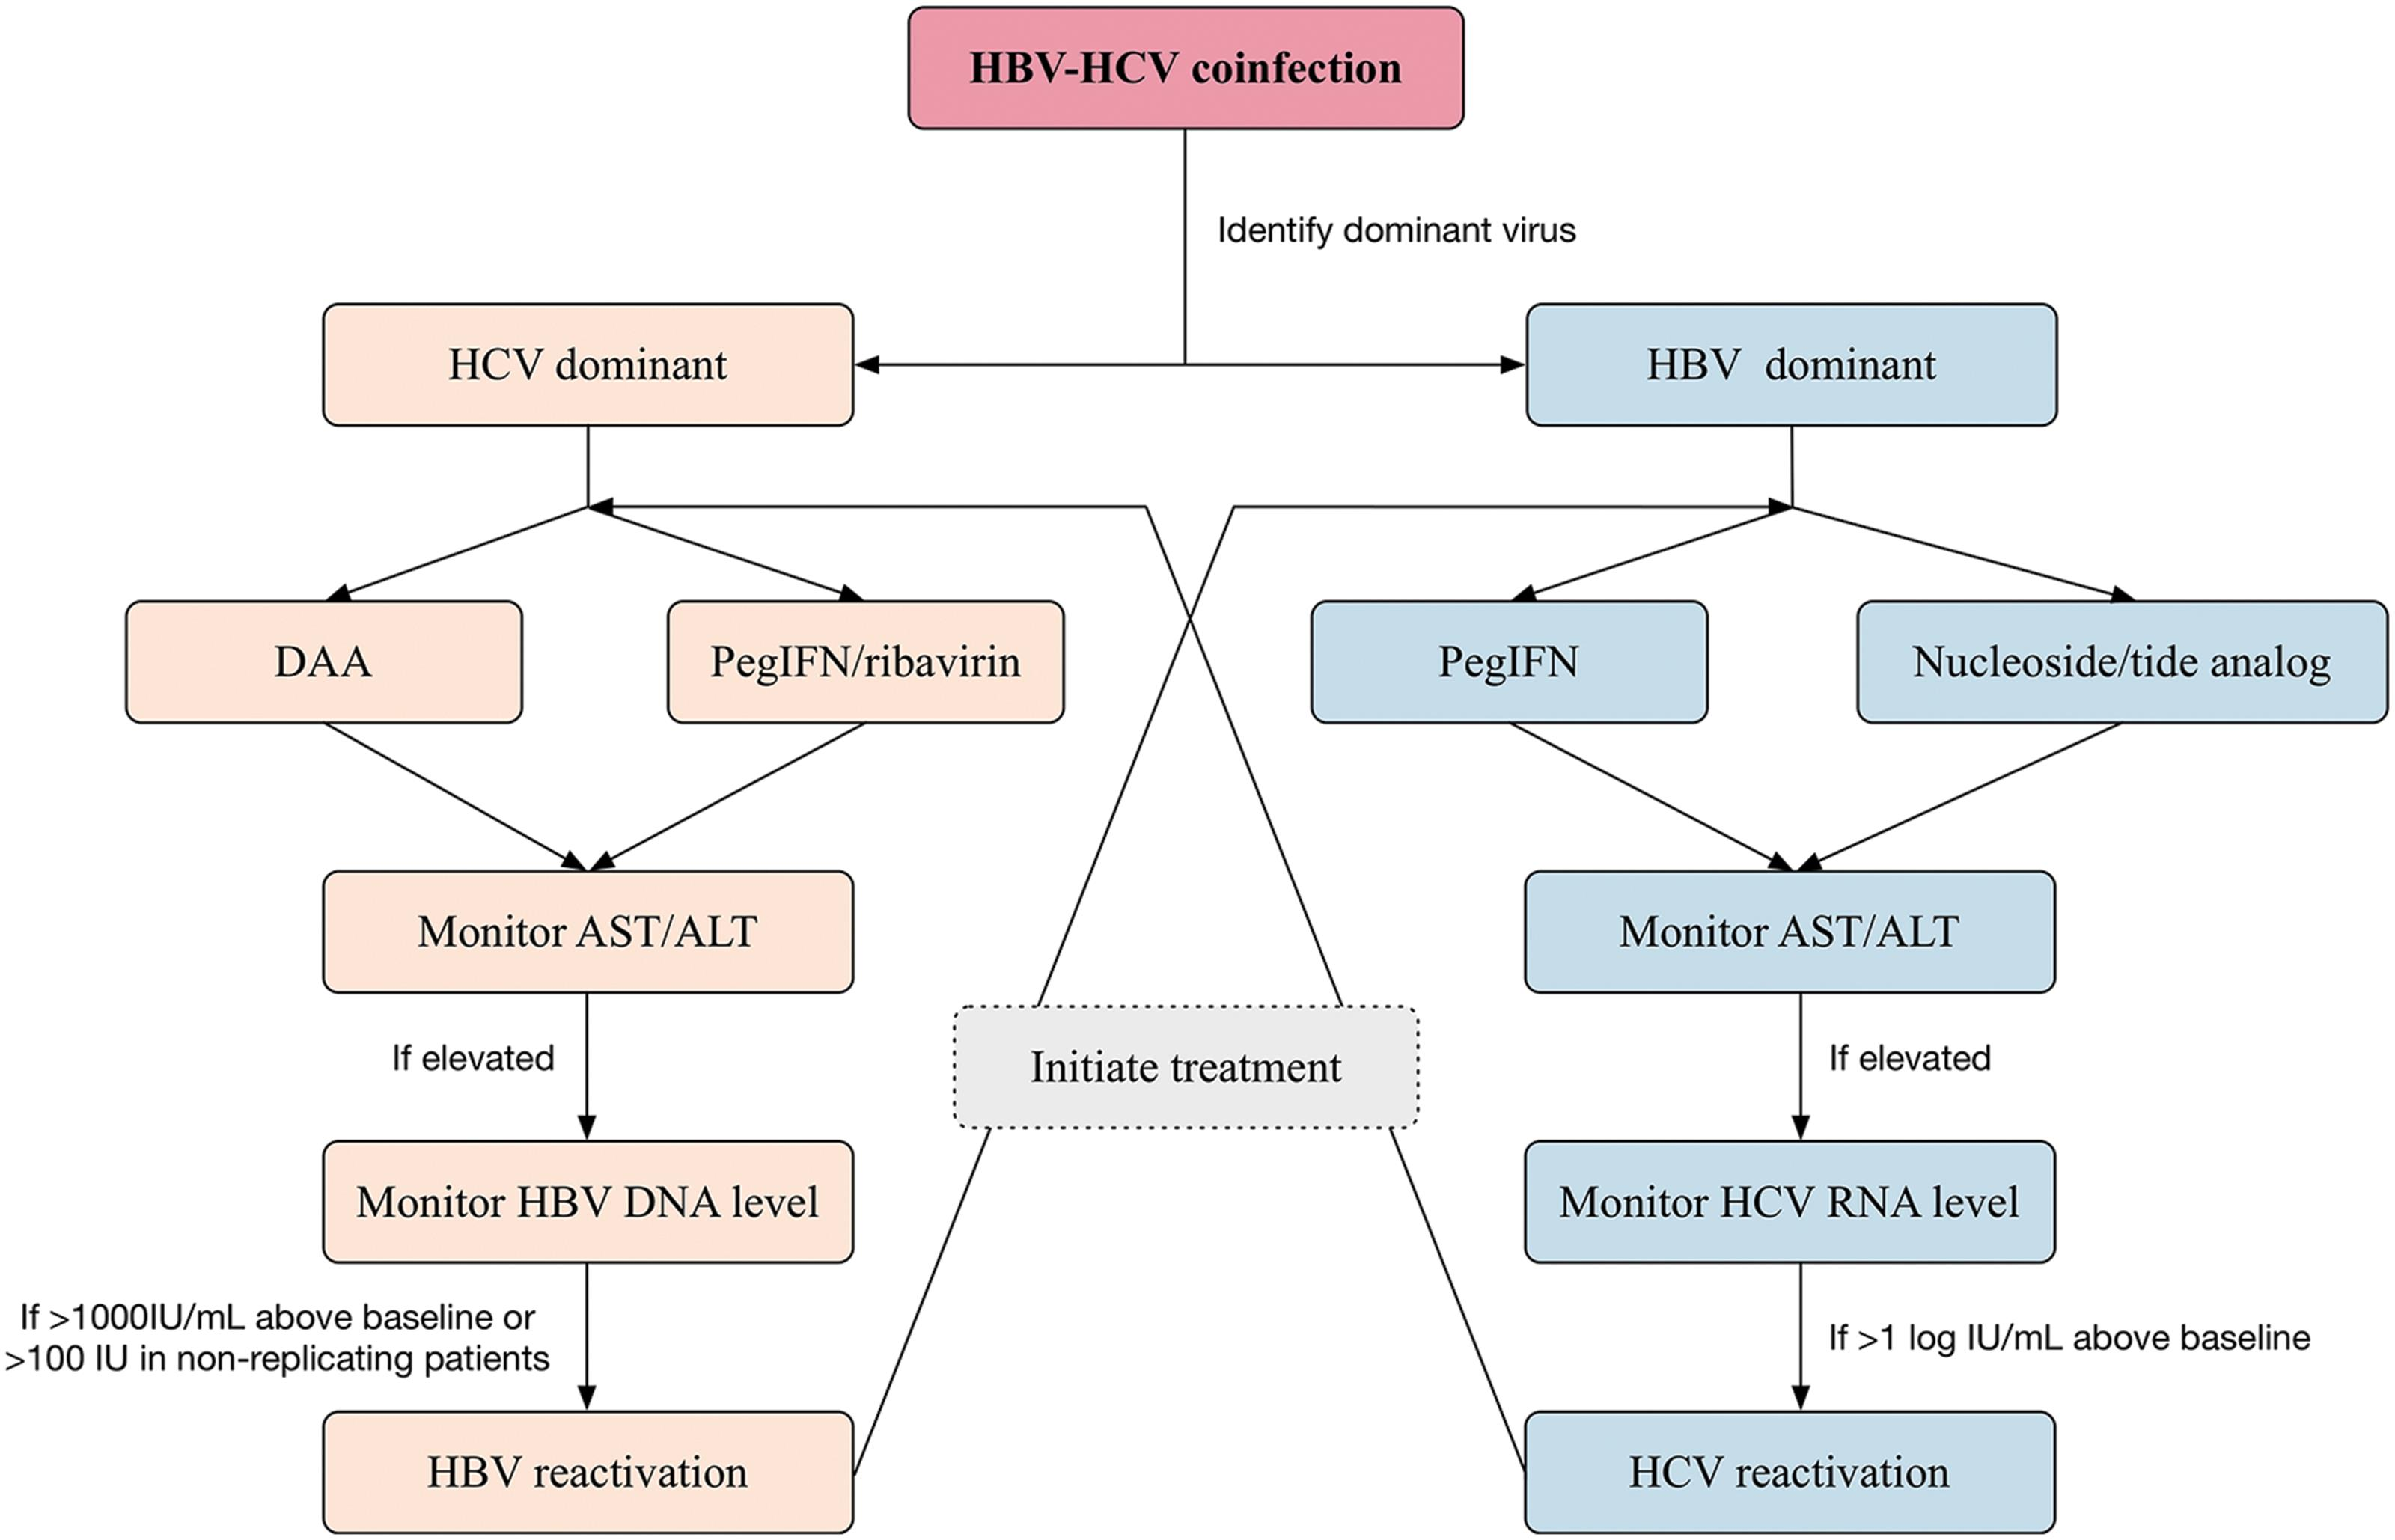 An algorithm for the treatment of HBV-HCV coinfection.